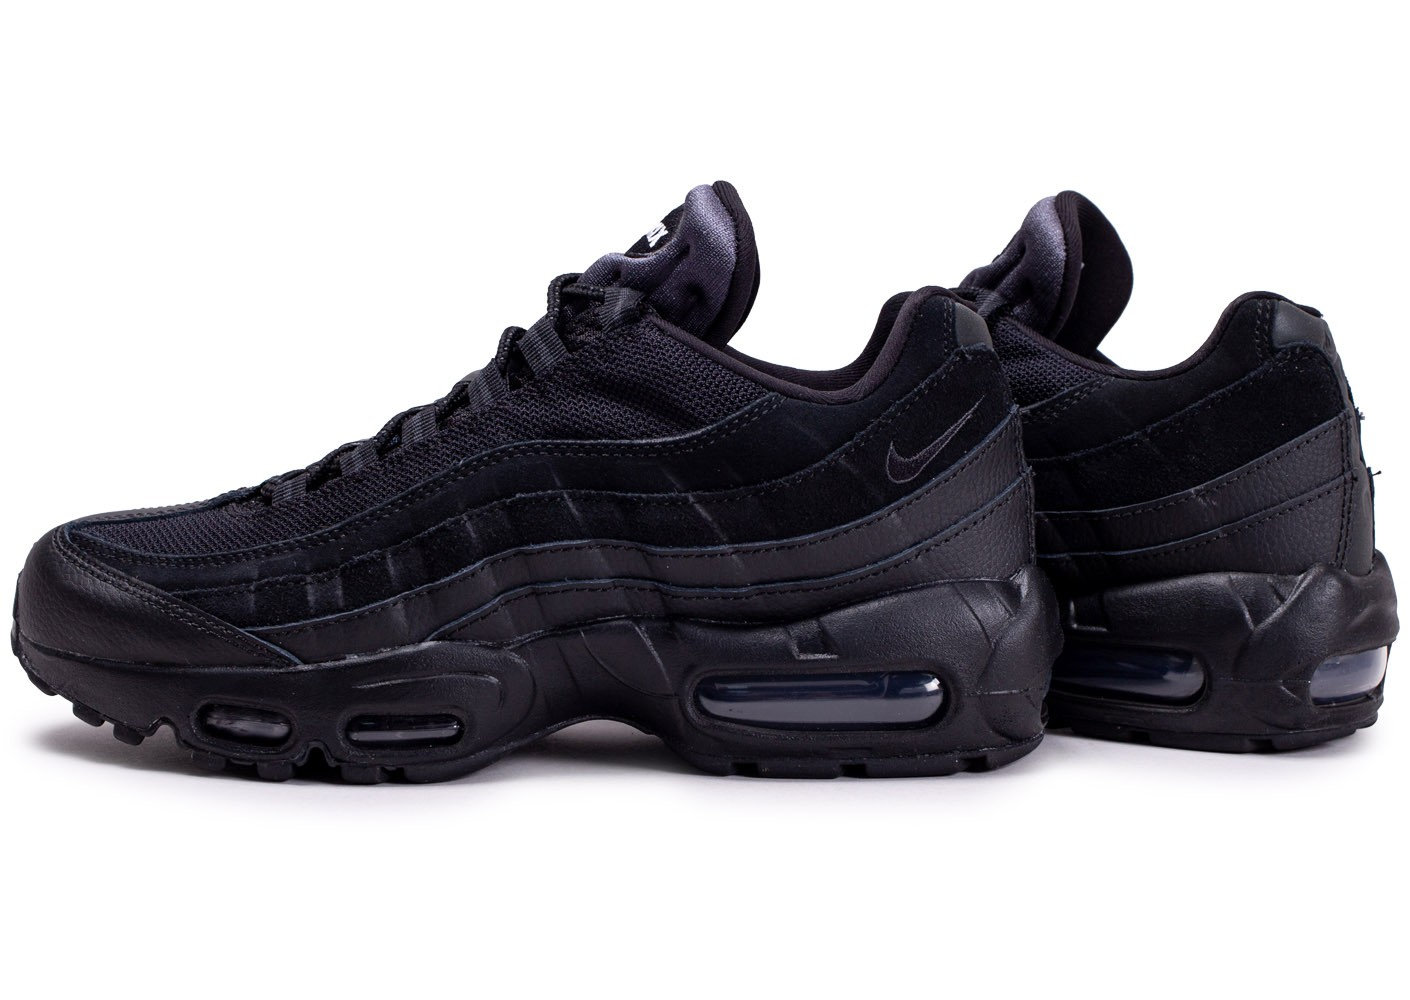 Nike Air Max 95 Essential noir anthracite Chaussures